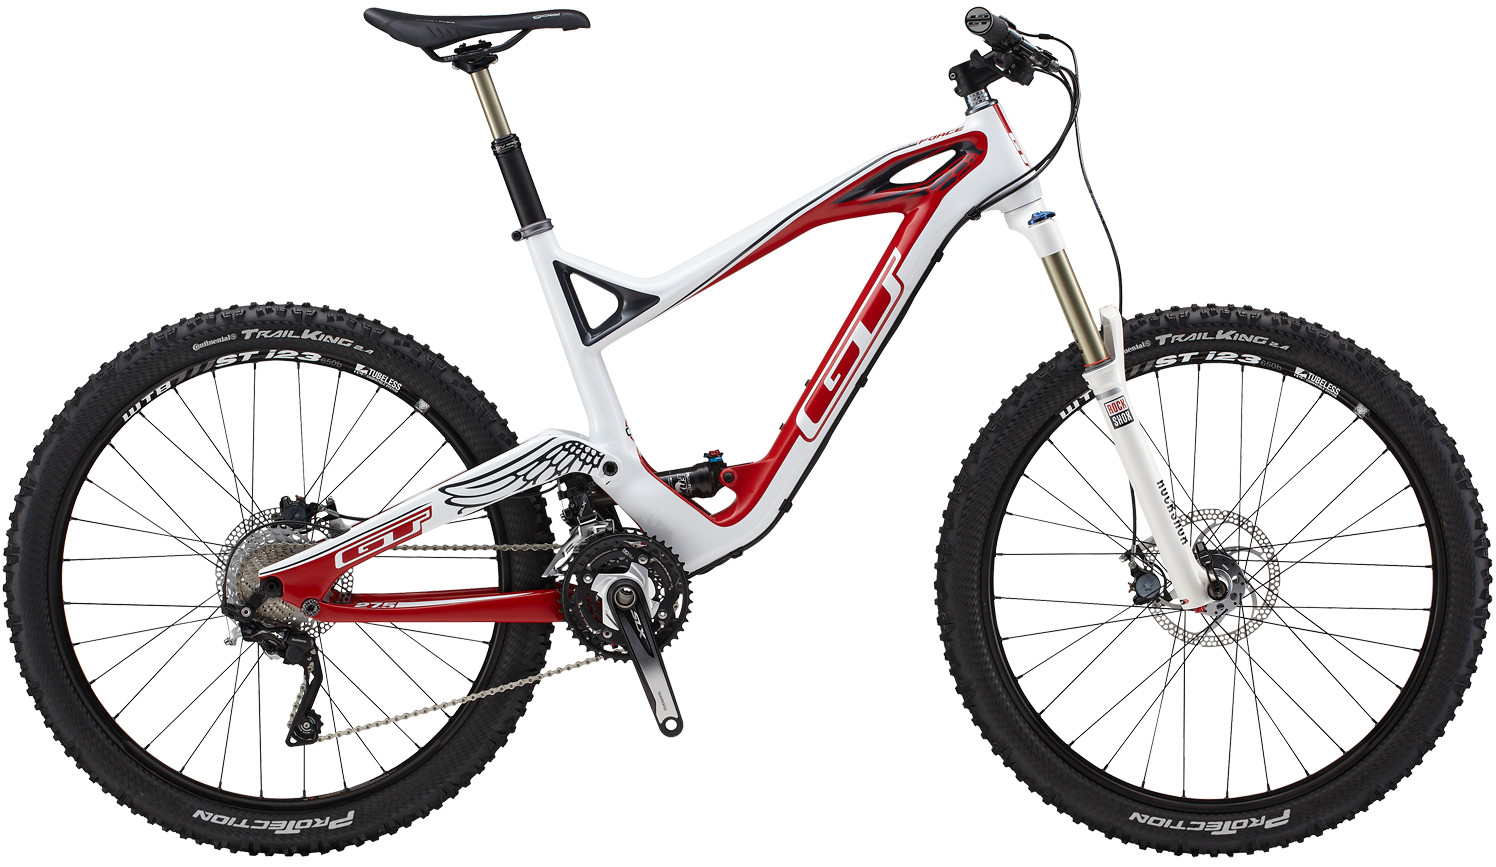 2014 GT Force Carbon Expert Bike g14_650m_force_expert_wht_3